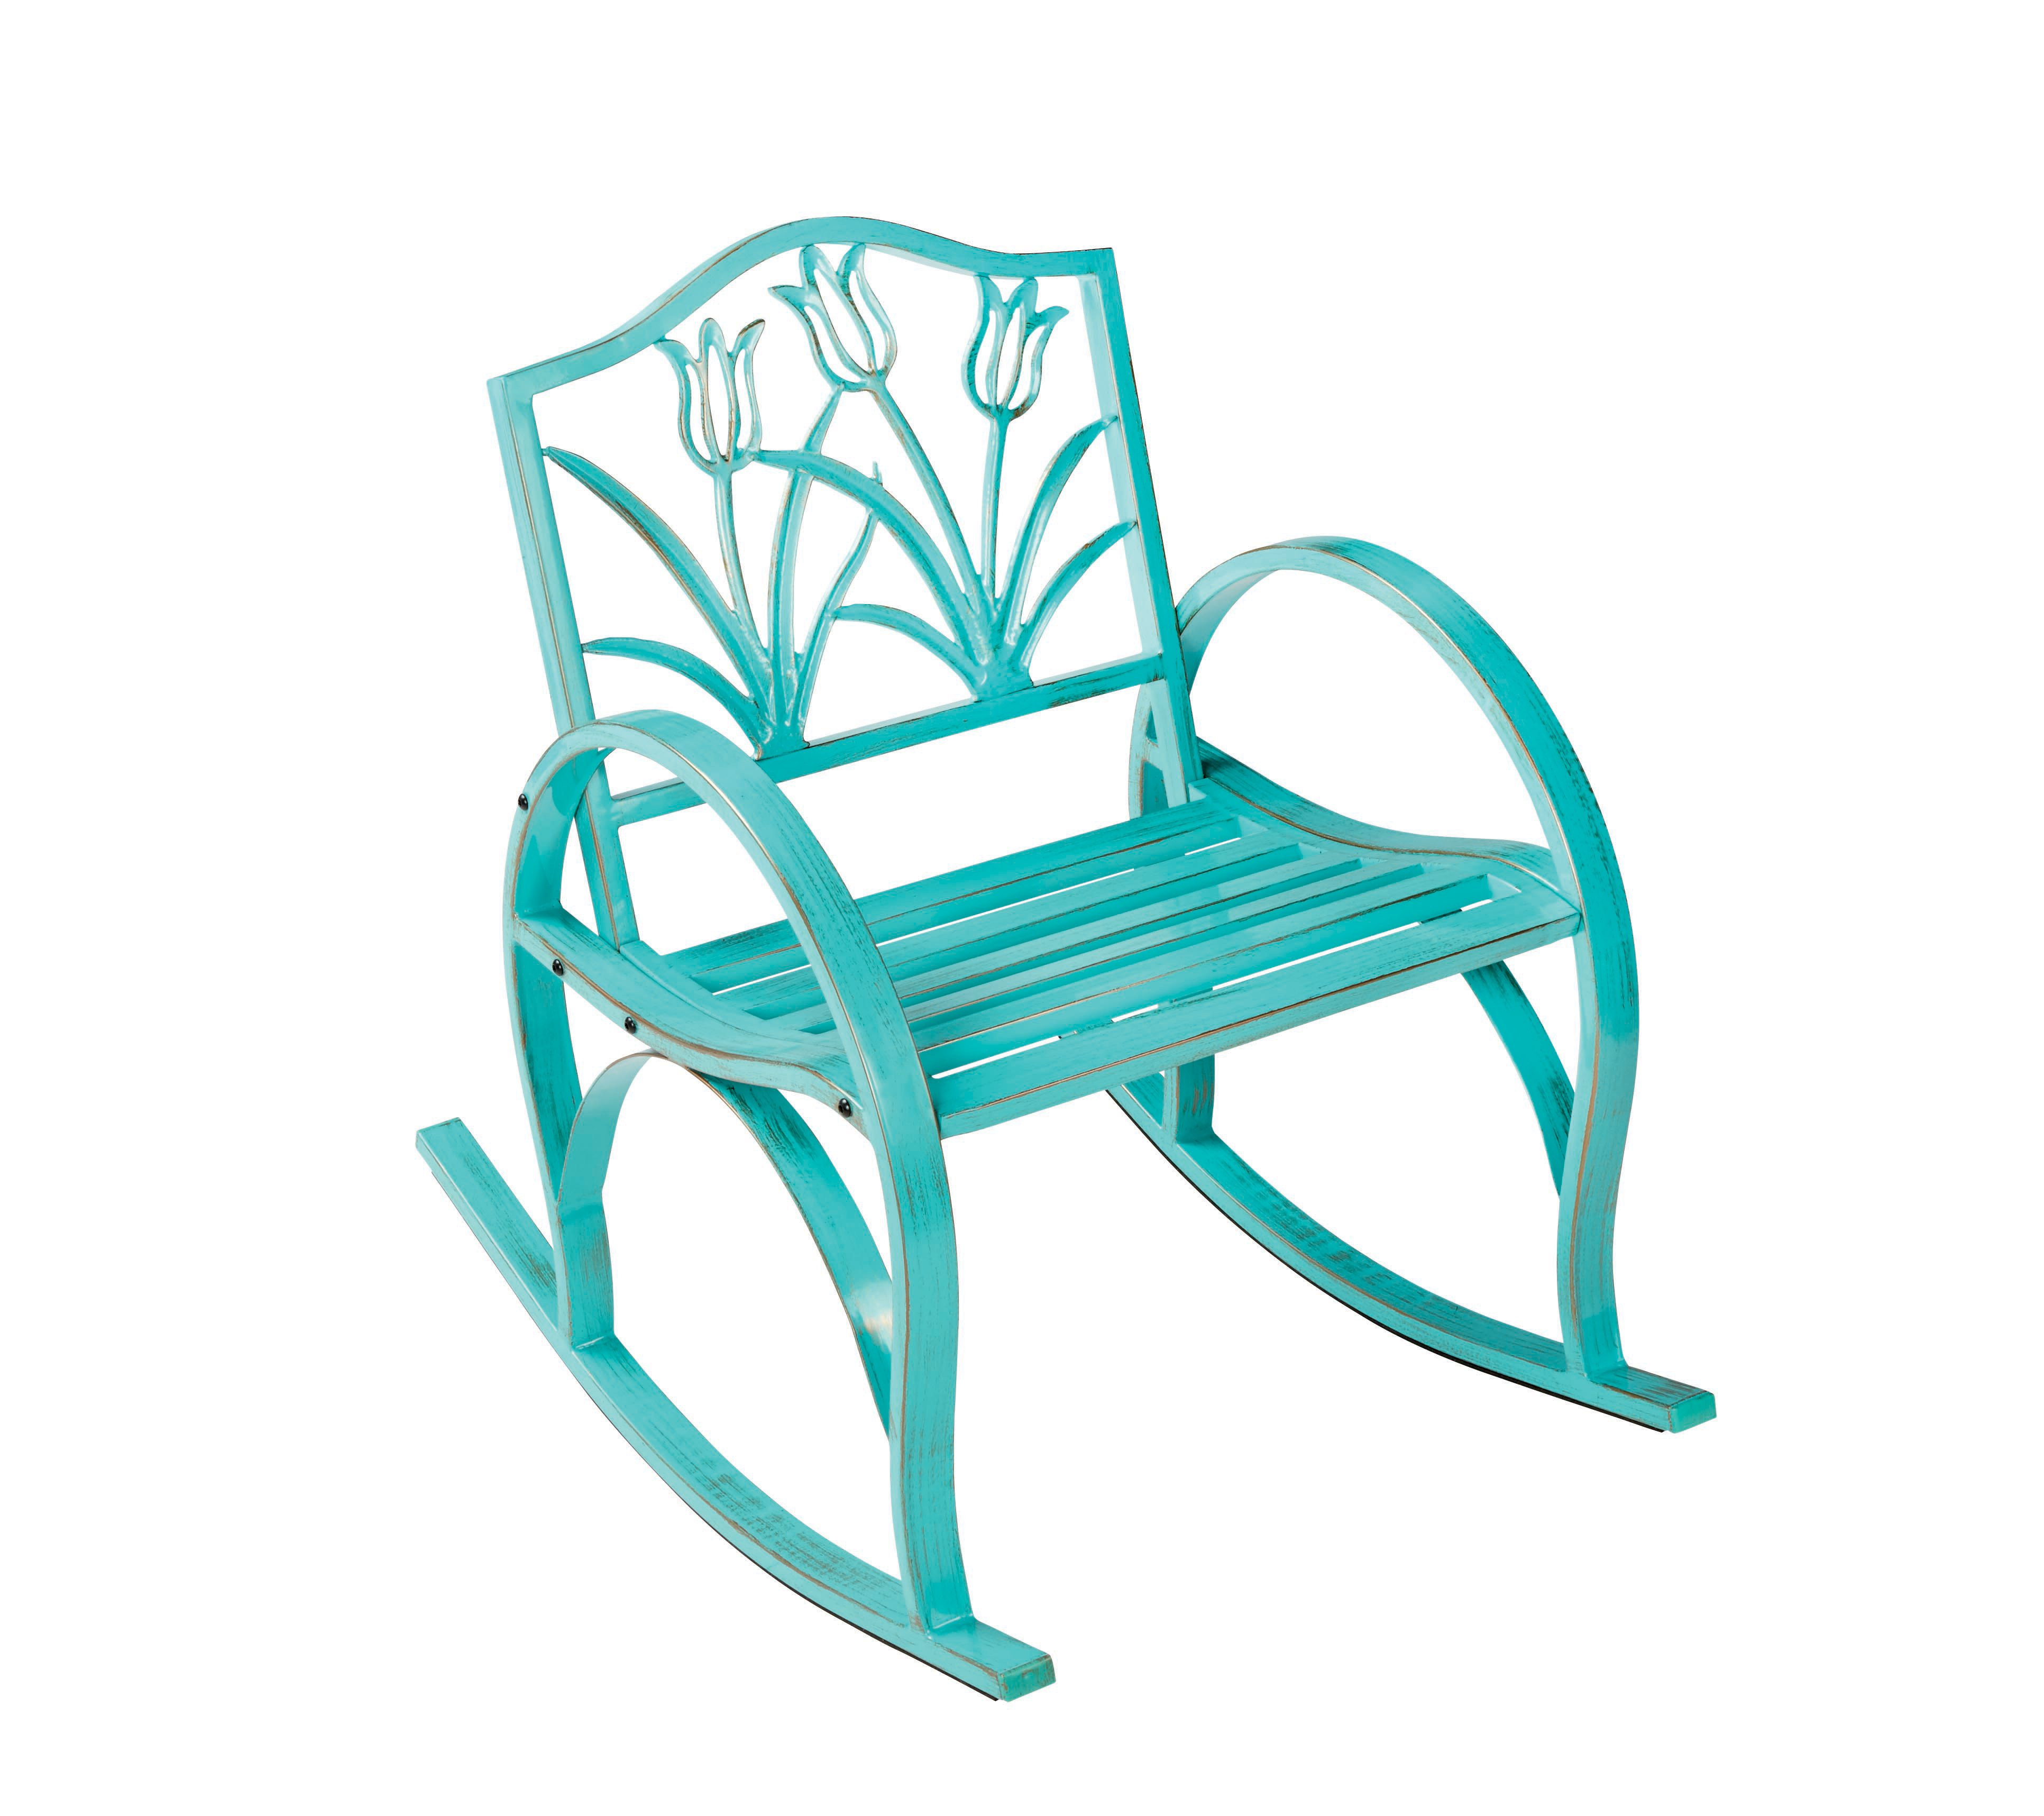 Outdoor Solutions Teal Tulip Rocking Chair Shop Furniture at HEB